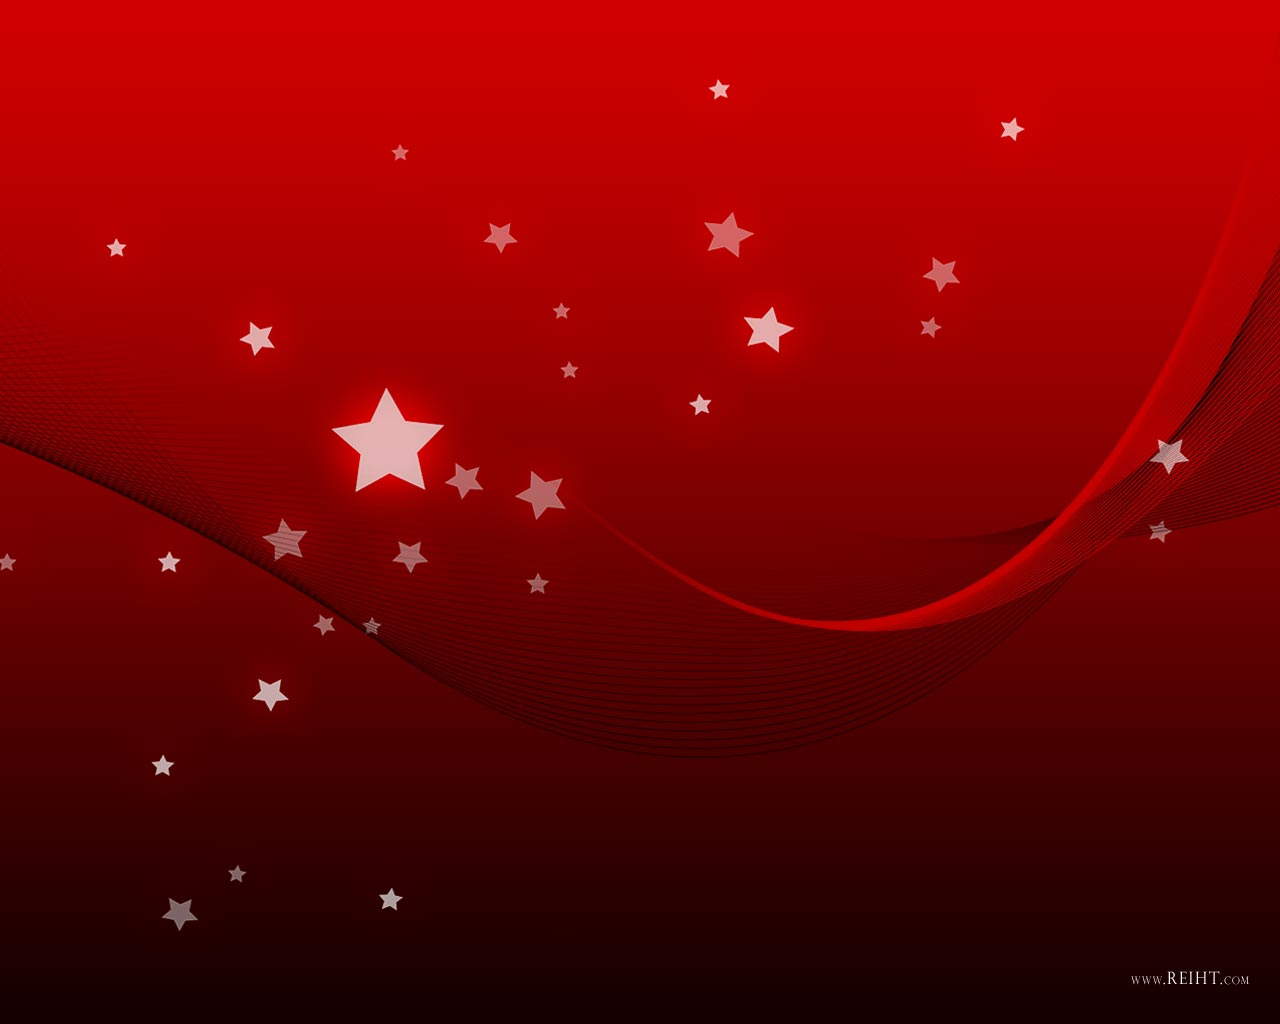 christmas wallpaper backgrounds